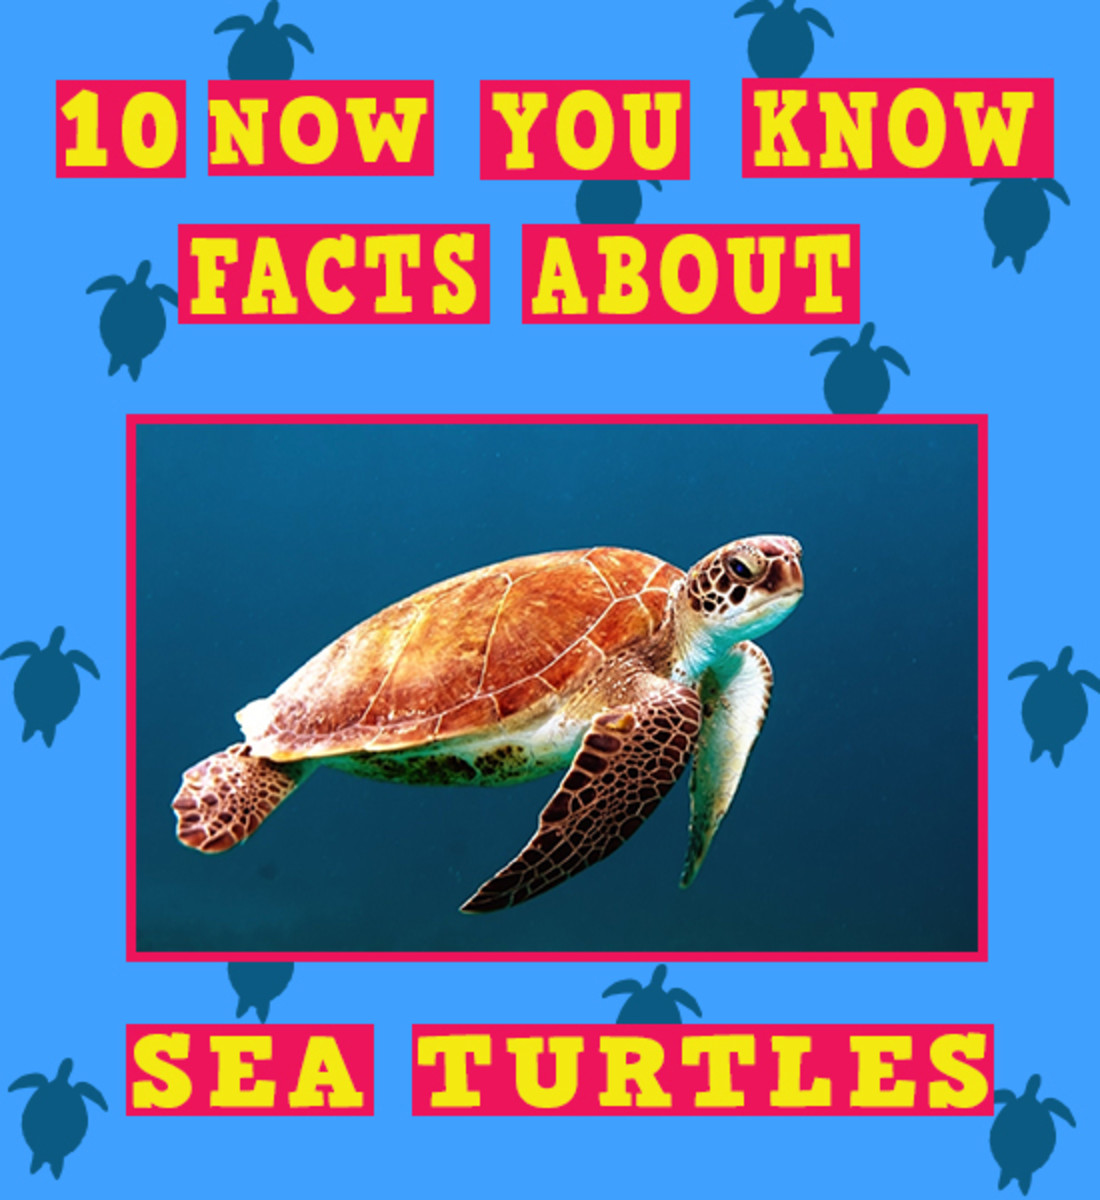 10 Facts About Sea Turtles